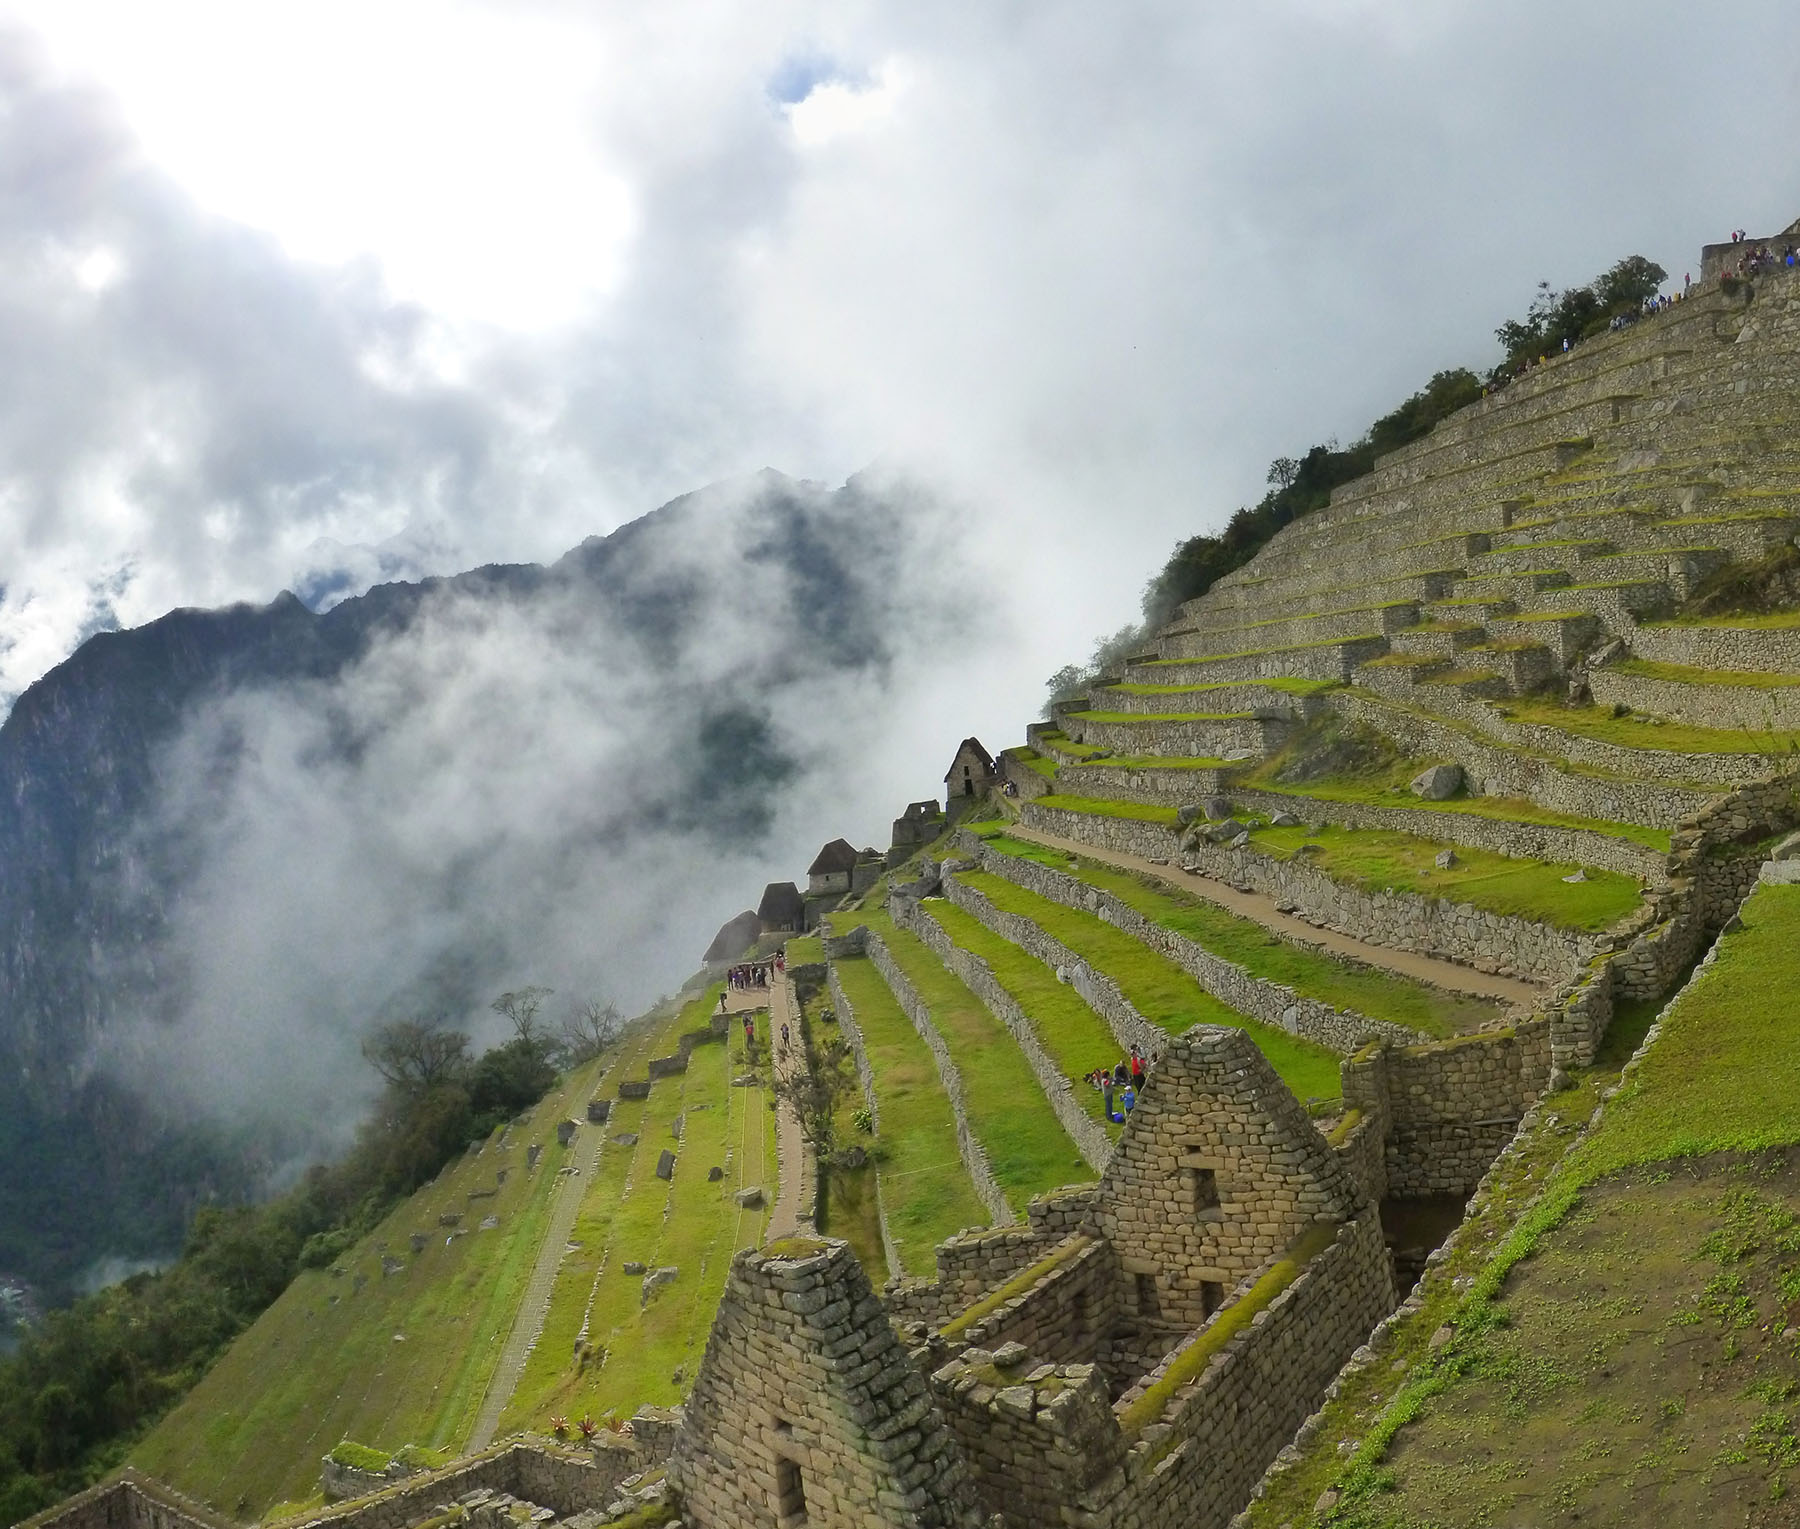 The Argricultural Terraces